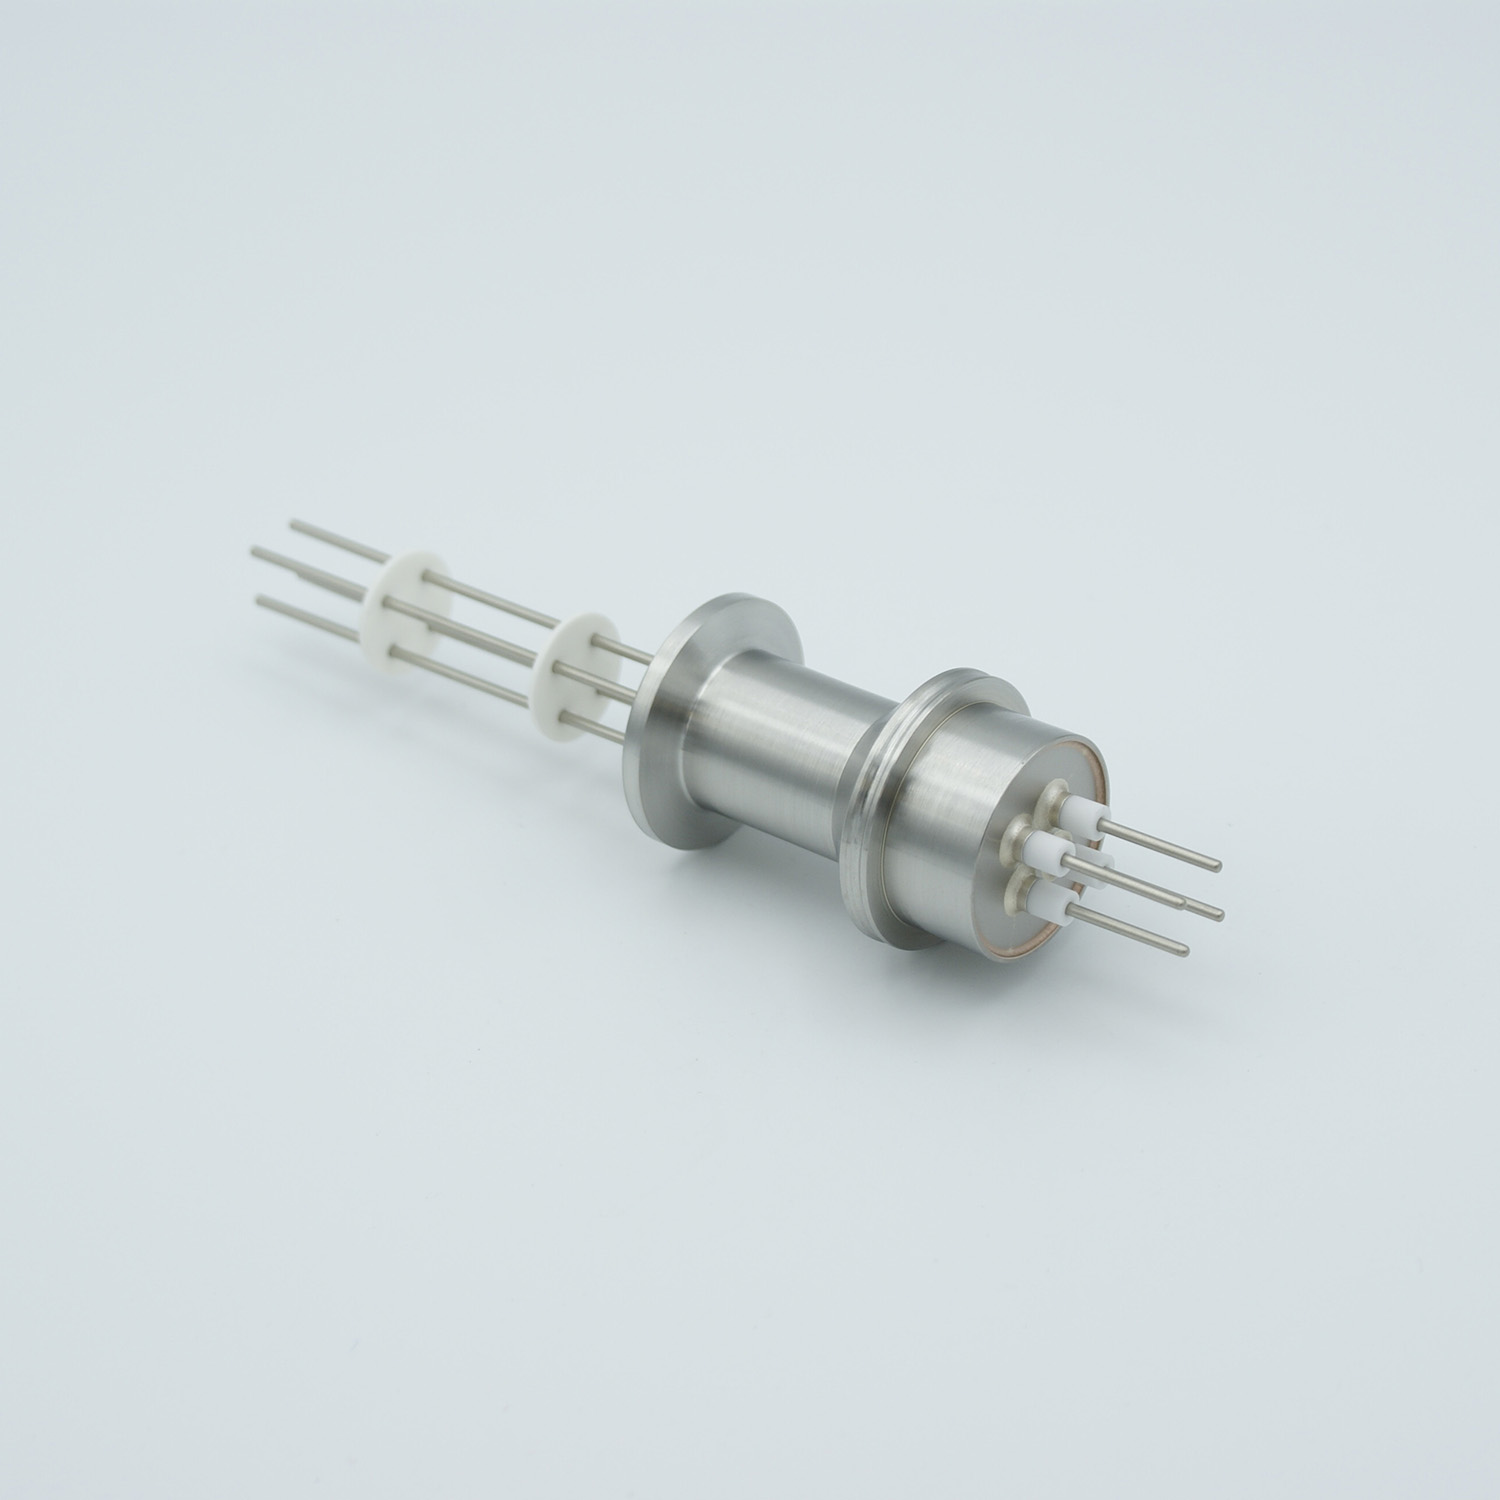 2 pair Thermocouple type-E feedthrough for push on connectors, DN16KF flange